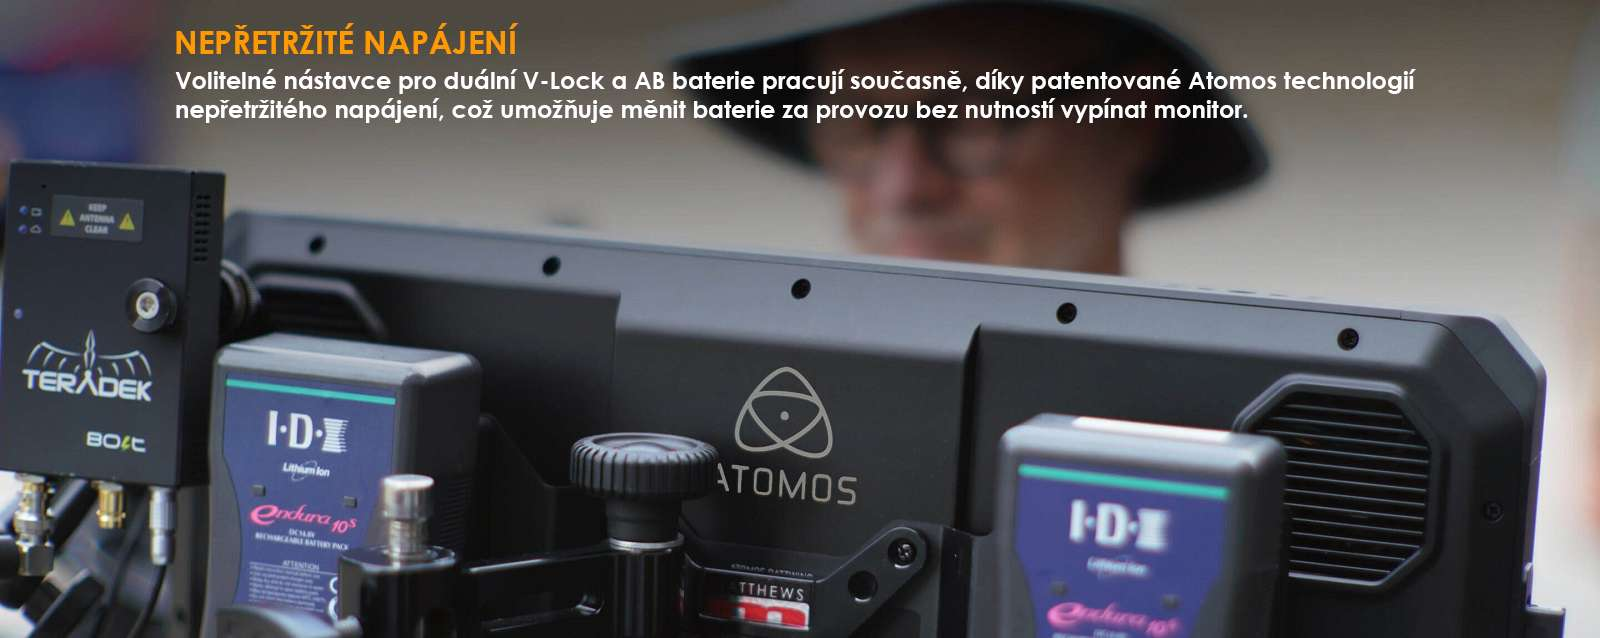 film-technika-atomos-sumo19m-02-intext